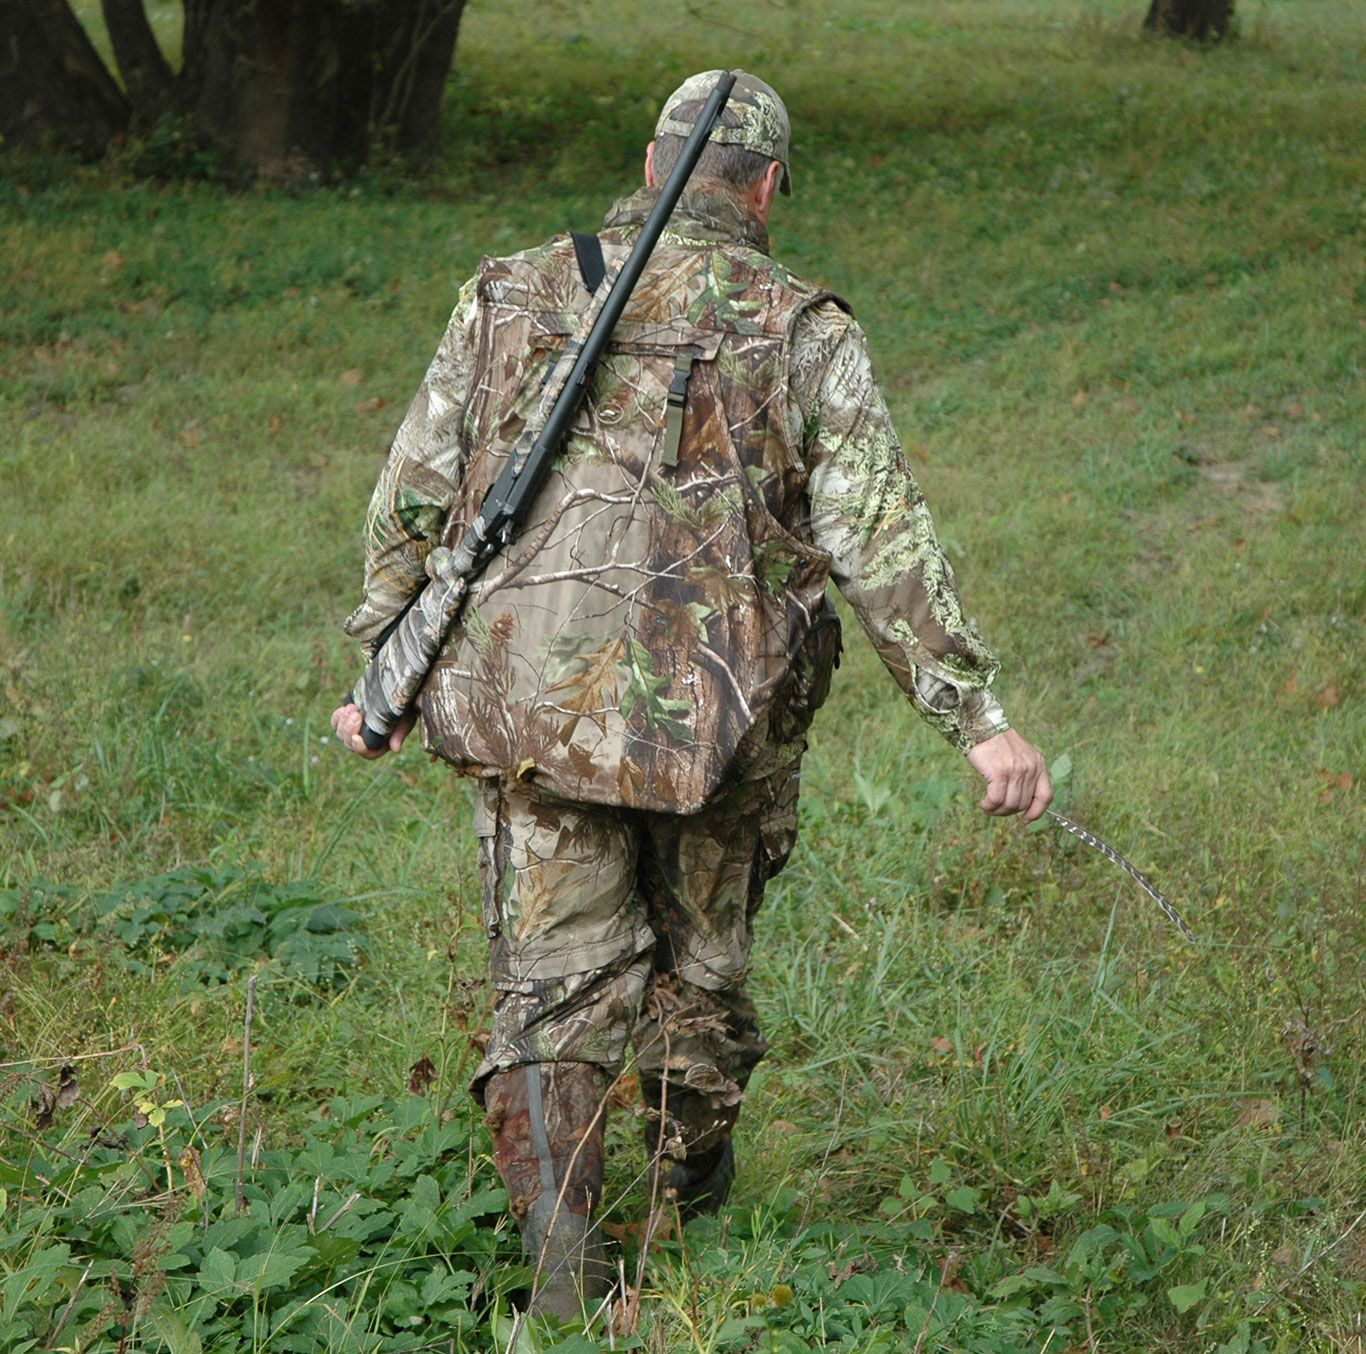 Figuring out the daily habits of the turkeys on your hunting ground comes down to putting several scouting principles to good use. (Lynn Burkhead photo)